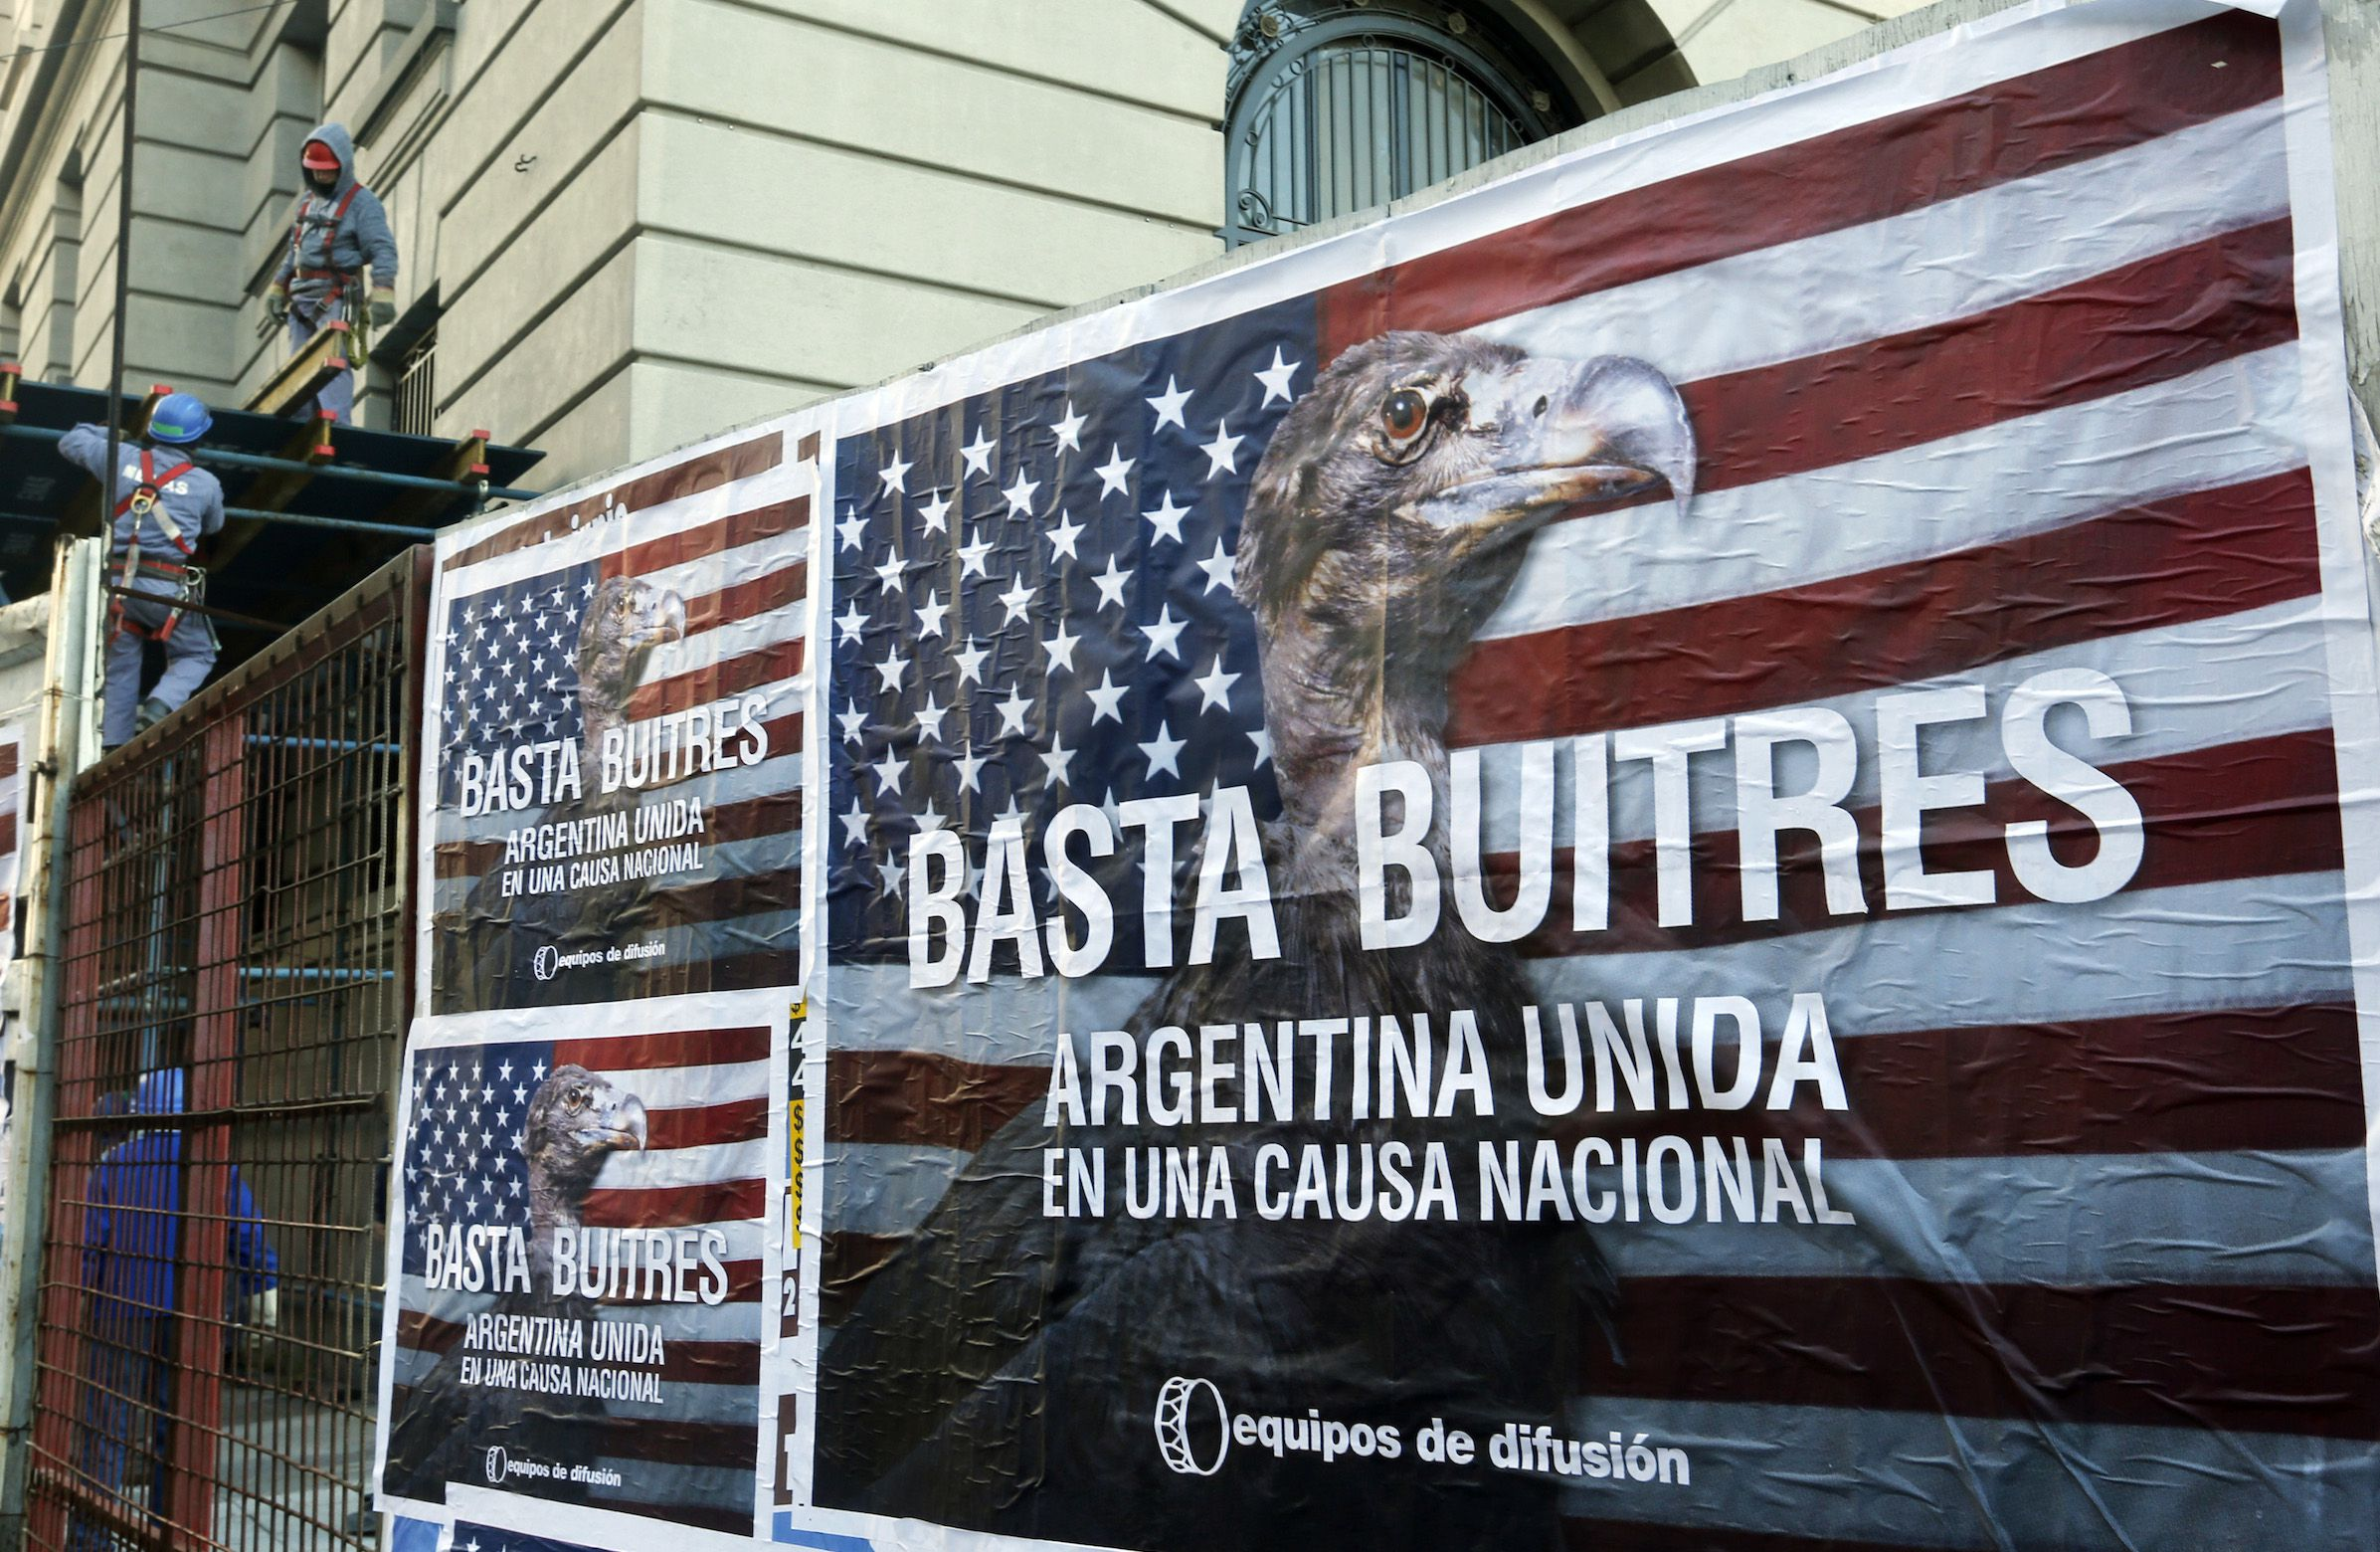 """Construction workers work near posters that read """"Enough vultures, Argentina united for a national cause"""" in Buenos Aires June 18, 2014. Argentina is taking steps to place its restructured debt under local law so it can continue making payments despite a string of adverse U.S. court rulings, Economy Minister Axel Kicillof said on Tuesday as fears of default increased. Under the move, Argentina would swap bonds that are governed by U.S. law for those governed by Argentine law, meaning they would no longer be subject to the U.S. courts.   REUTERS/Enrique Marcarian (ARGENTINA - Tags: BUSINESS POLITICS CRIME LAW) - RTR3UG0T"""